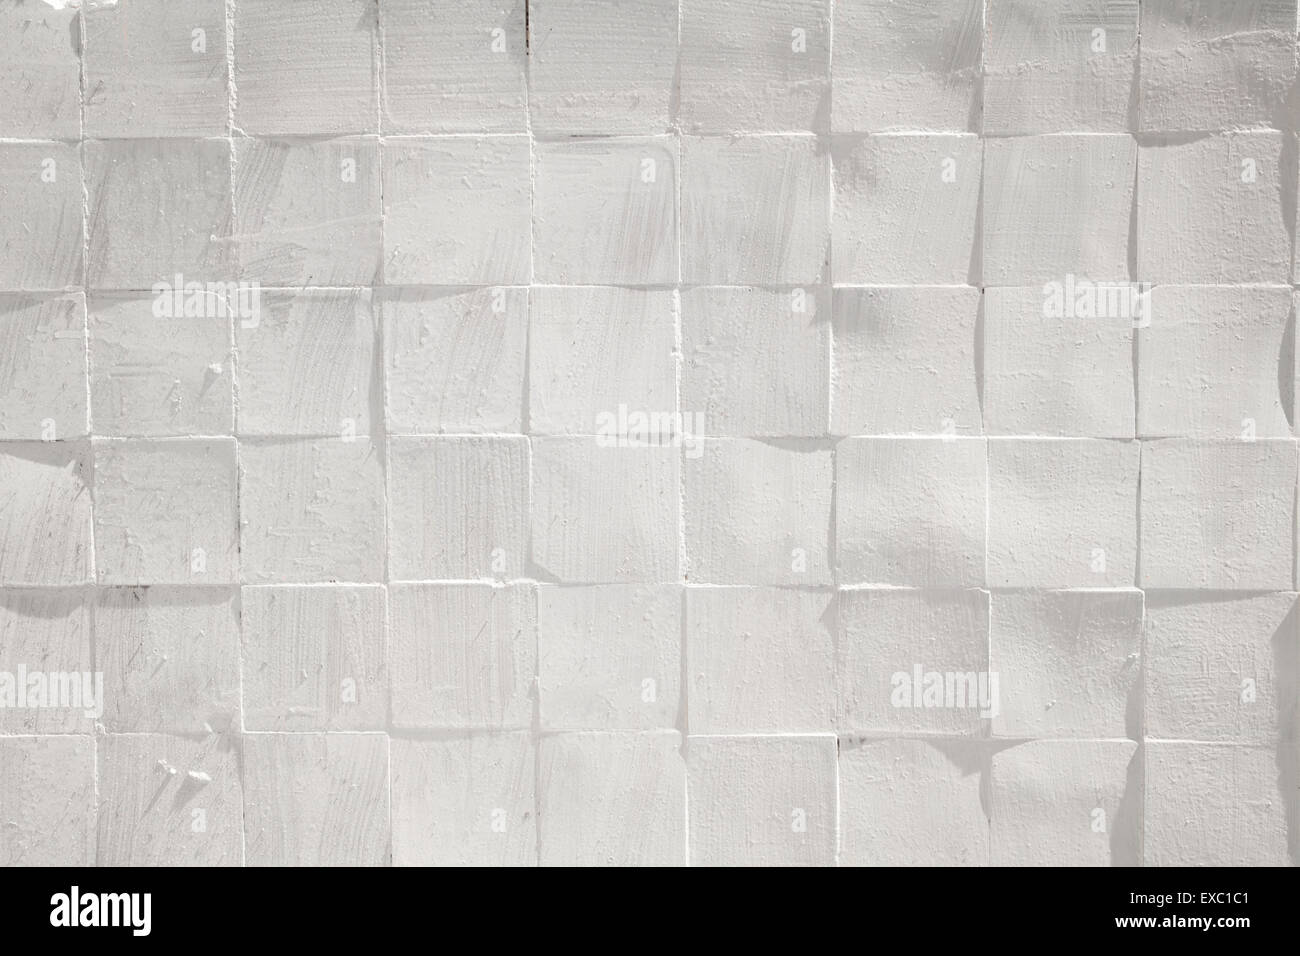 Square tiles white rough textured wall pattern background Stock ...